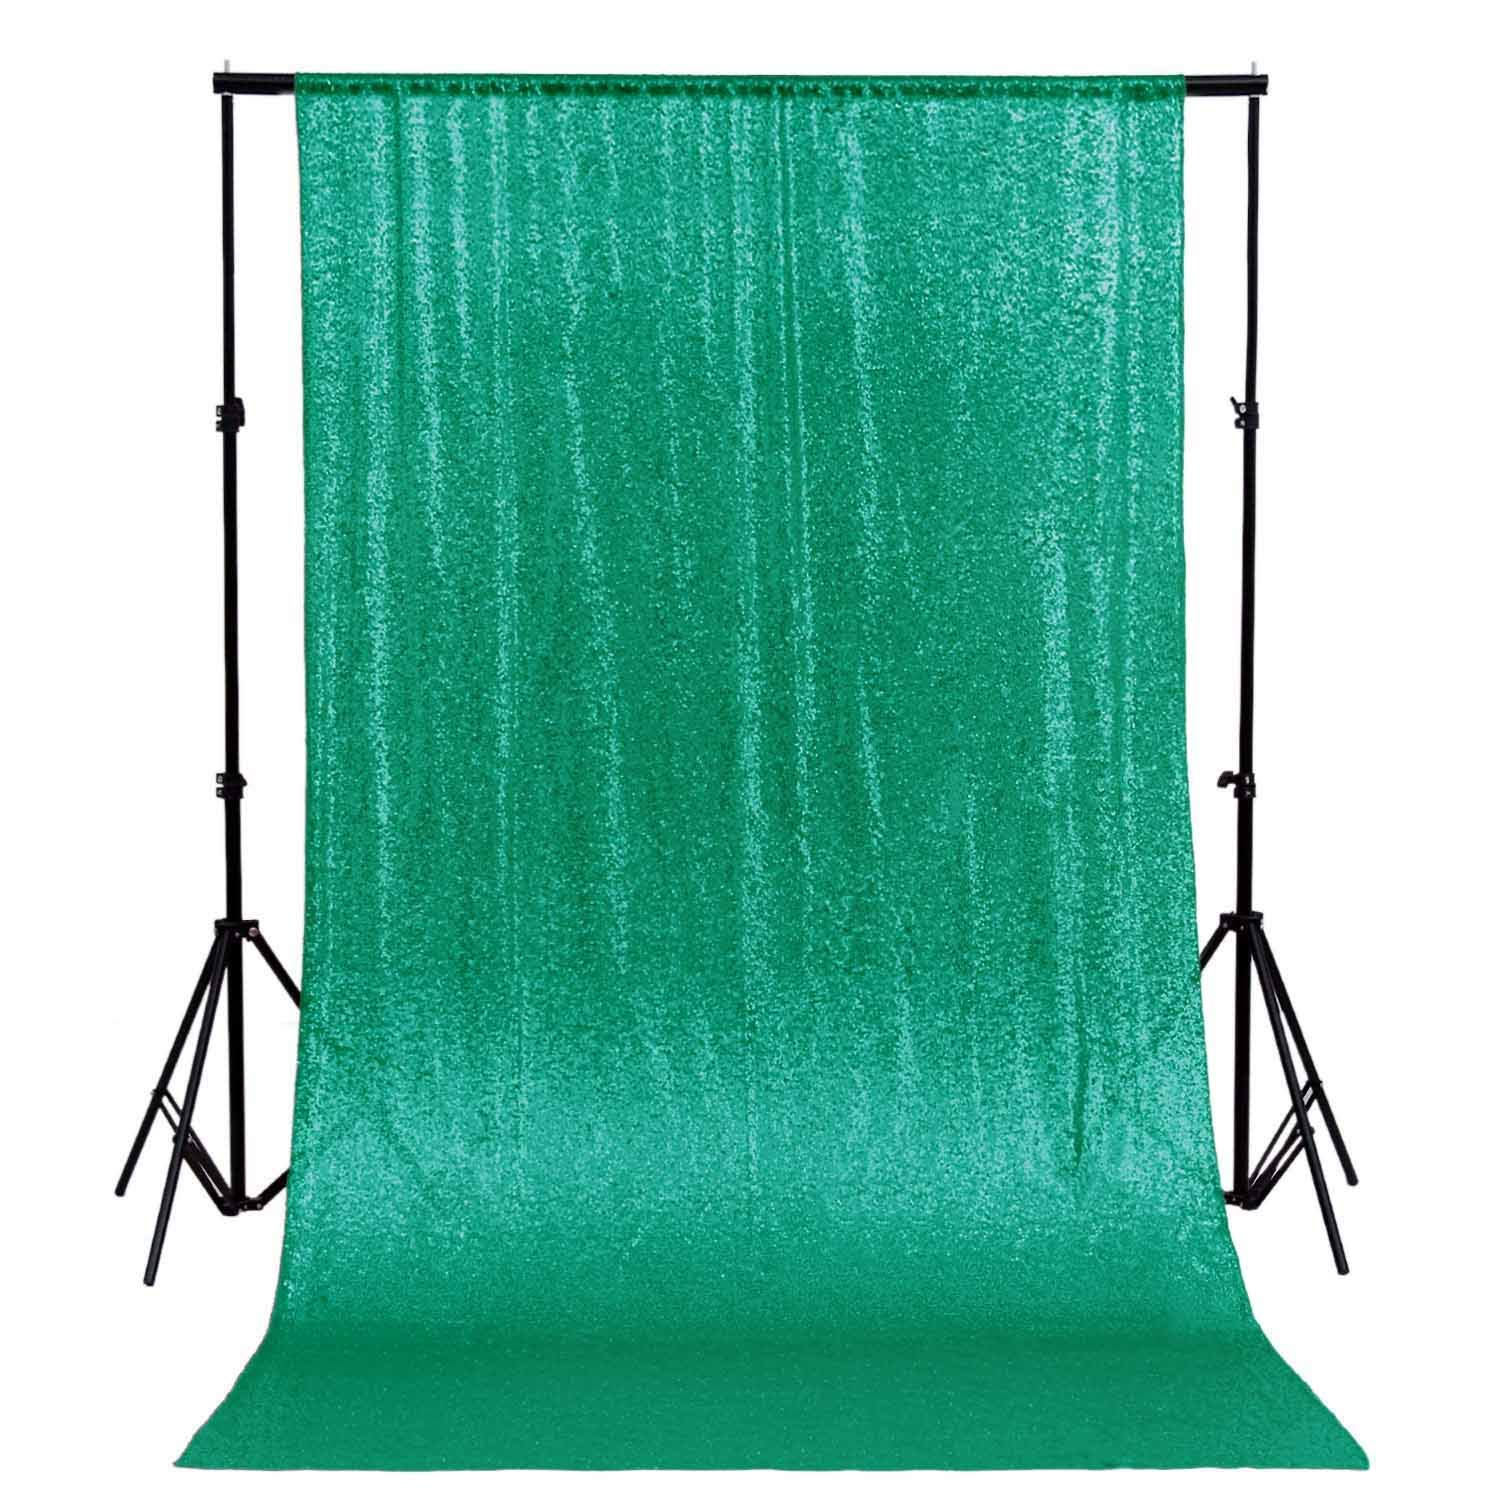 DUOBAO Sequin Backdrop Curtain 4FTx6FT Green Glitter Background Green Sequin Photo Backdrop Prom Party Decor~0613 by DUOBAO